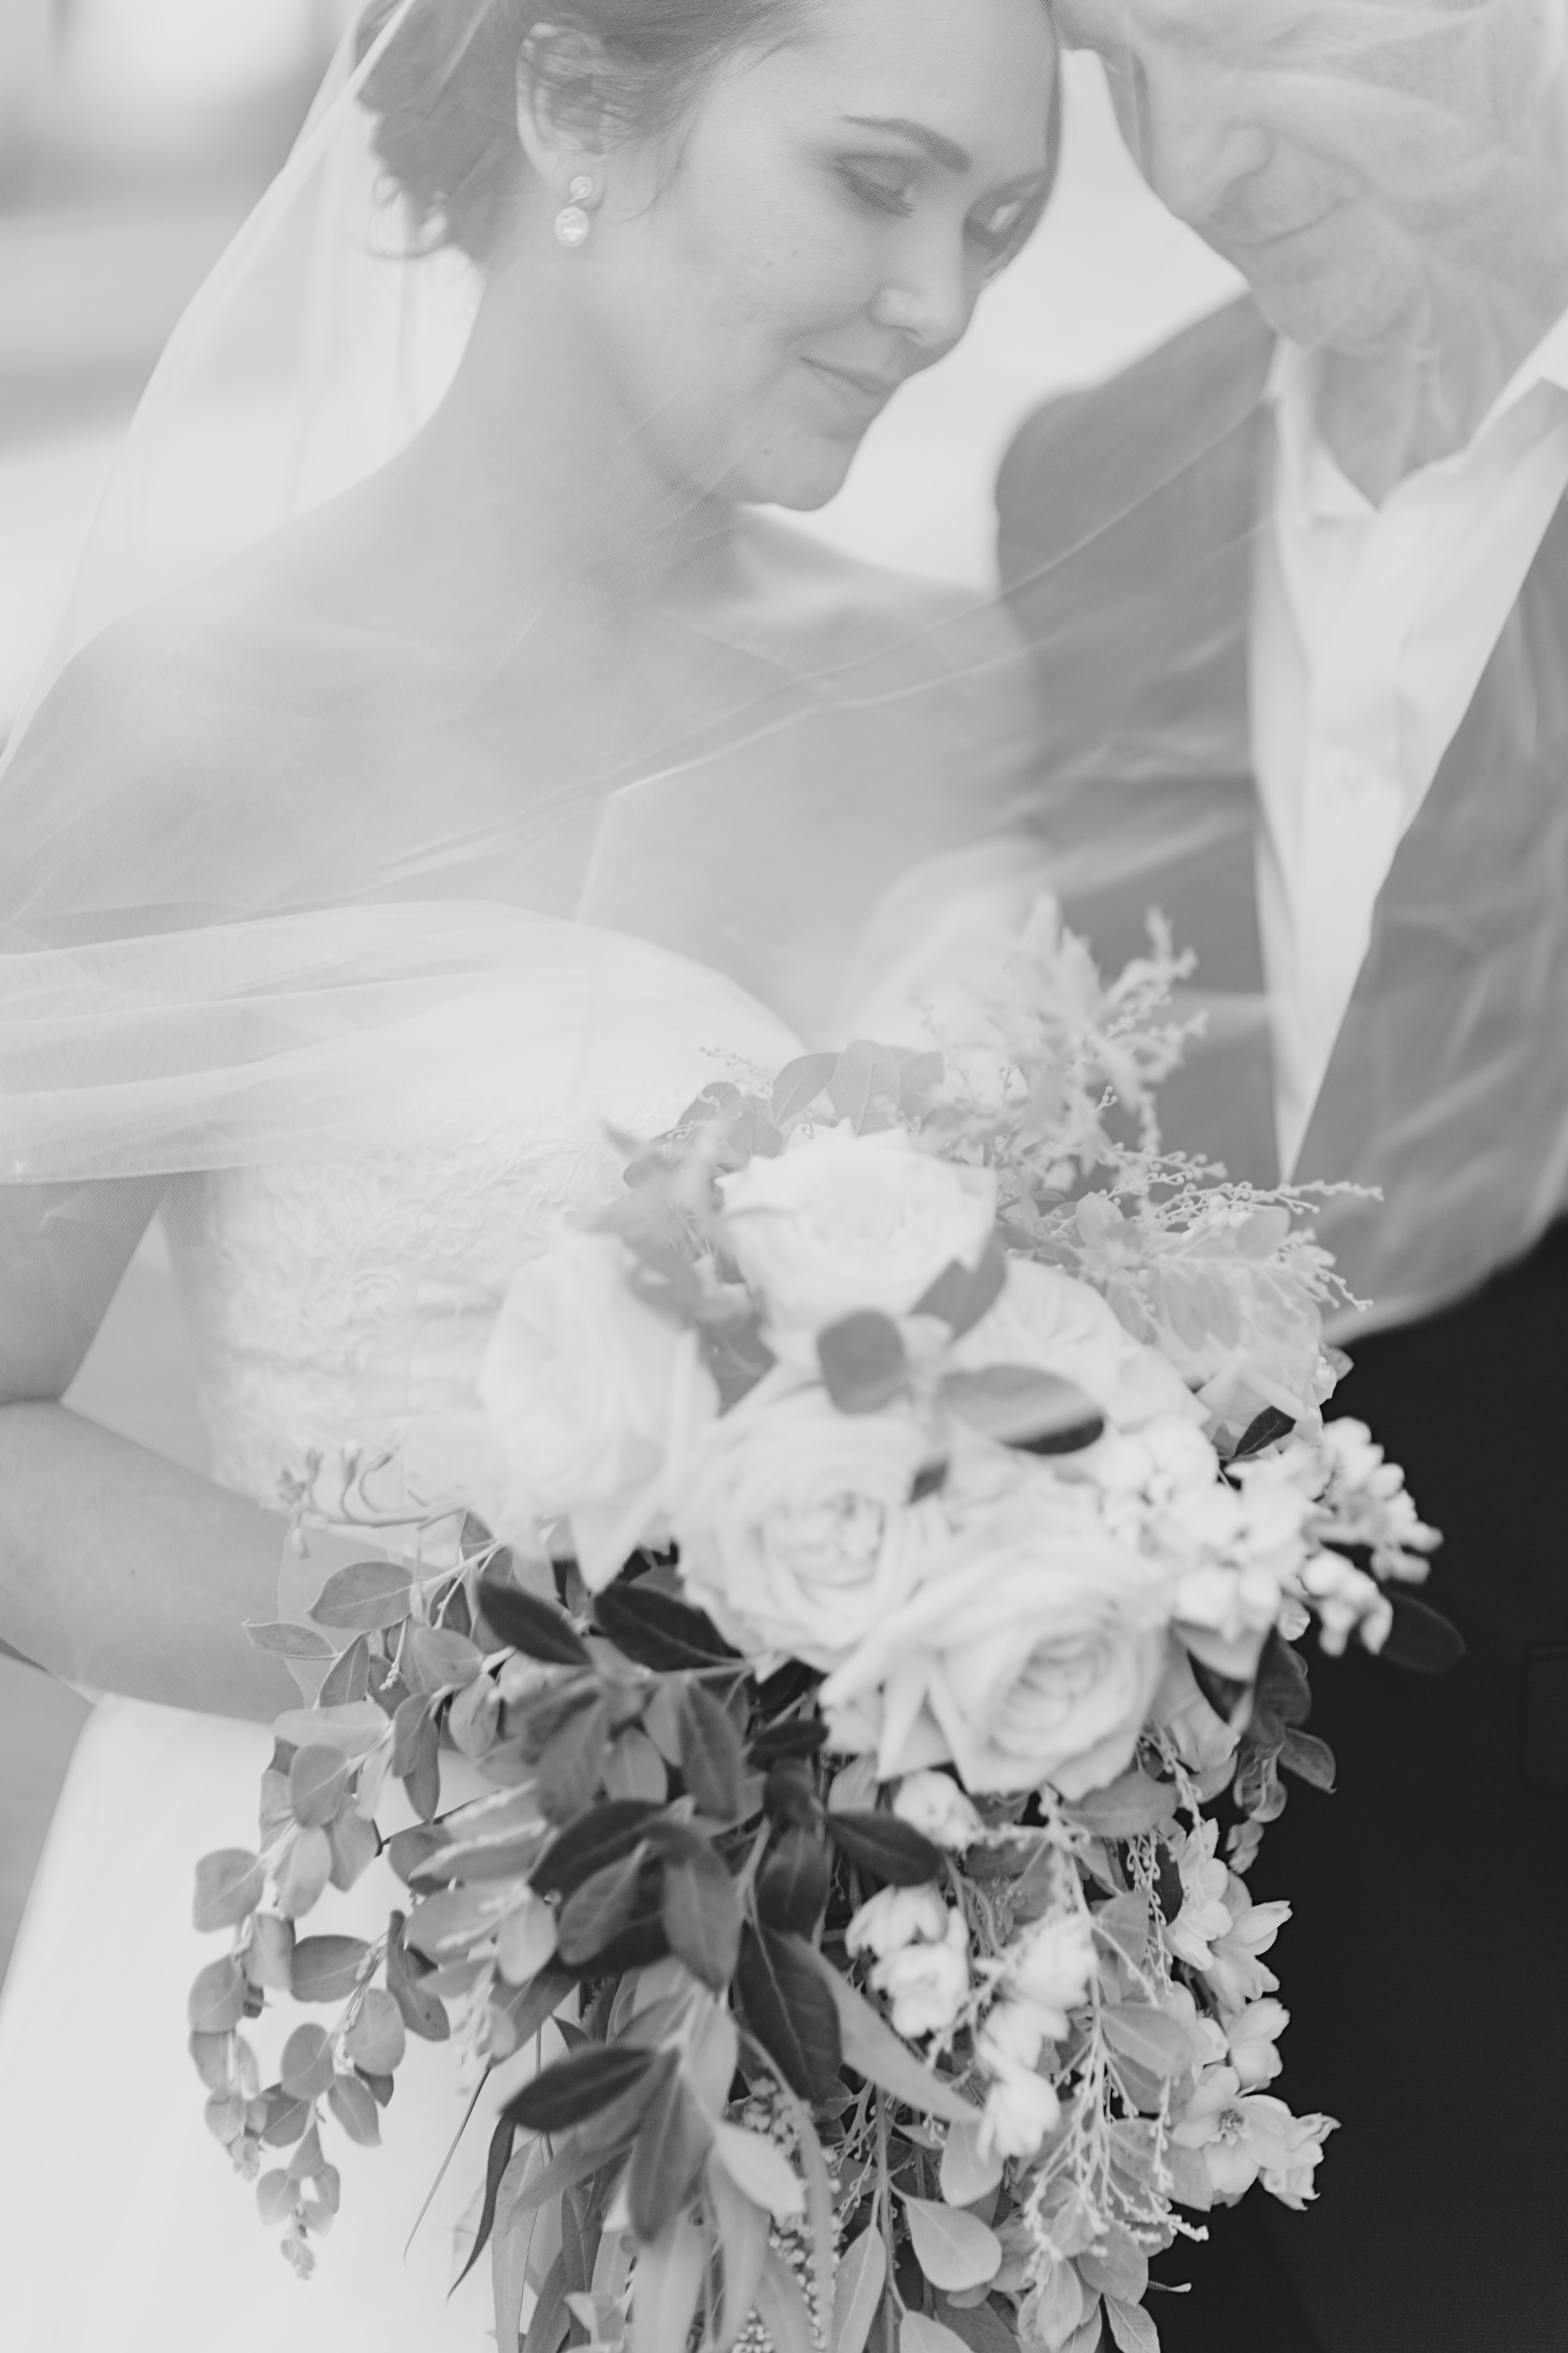 long Meadow johannesburg wedding venue photographer_047.jpg